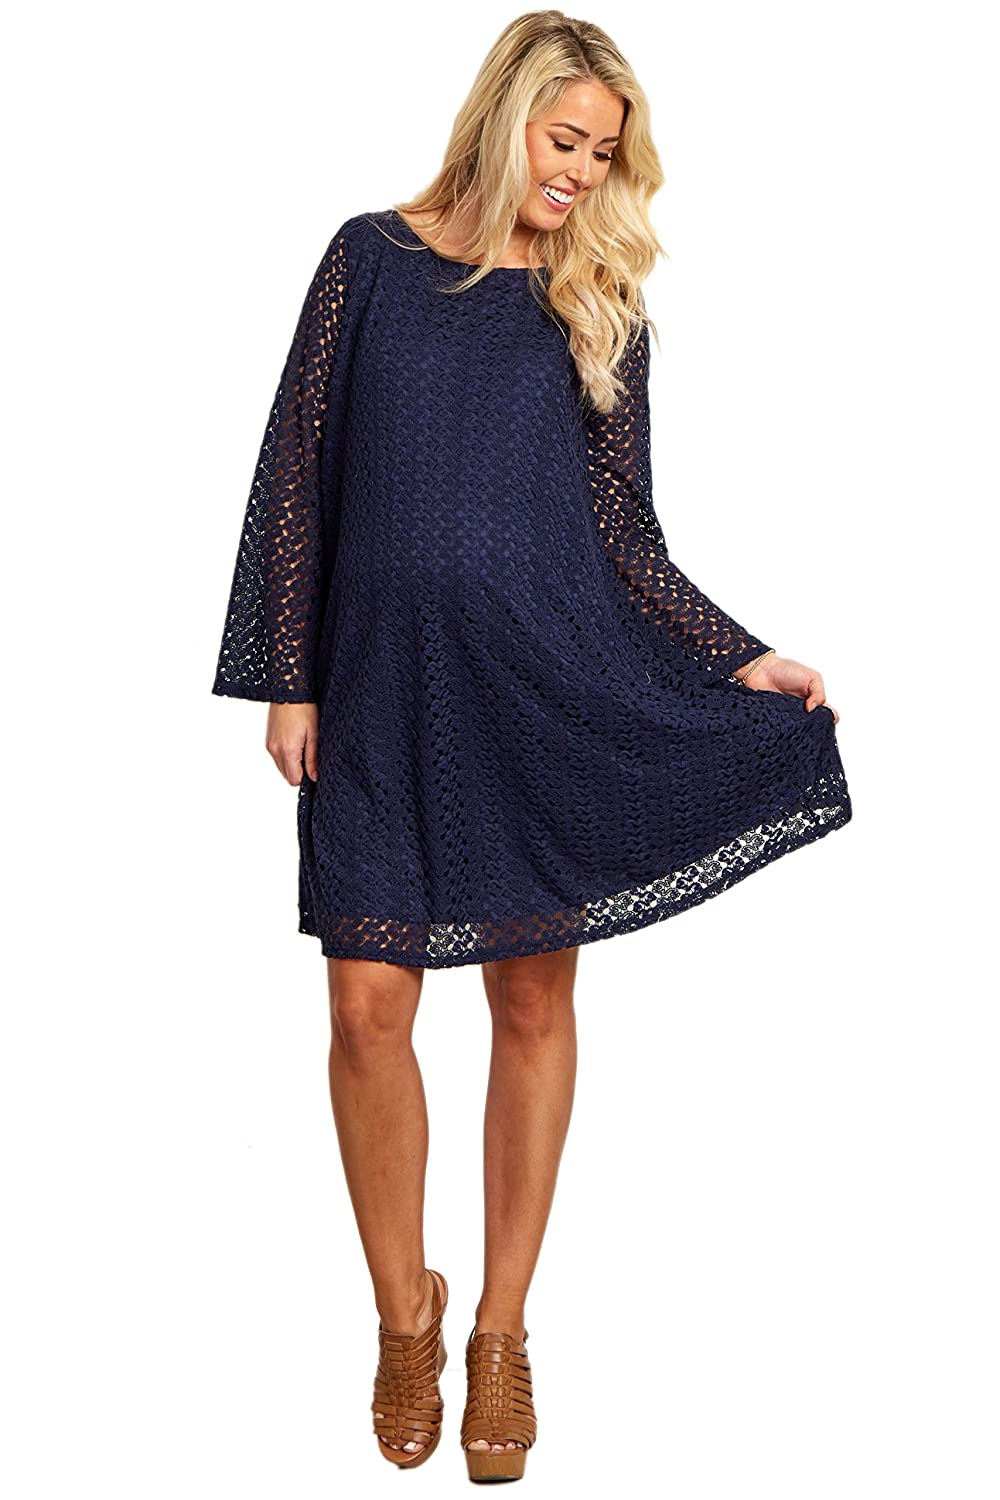 Pinkblush maternity open lace overlay bell sleeve dress at amazon pinkblush maternity open lace overlay bell sleeve dress at amazon womens clothing store ombrellifo Image collections